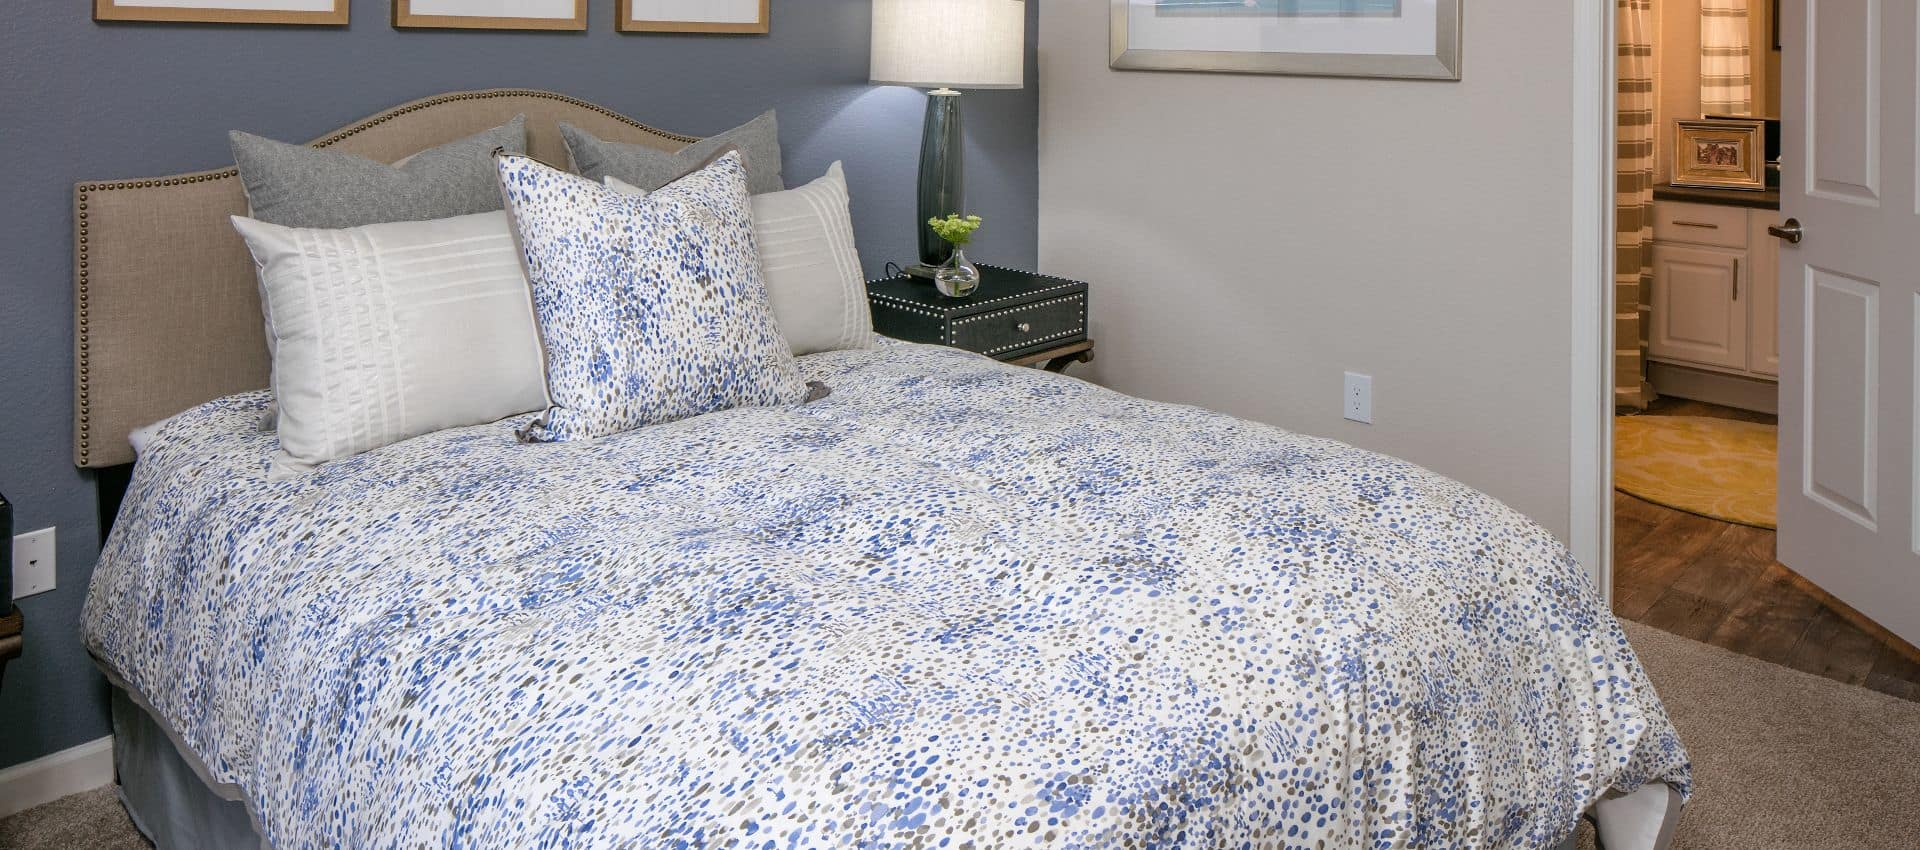 The Artisan Apartment Homes's Well Decorated Bedroom in Sacramento, CA